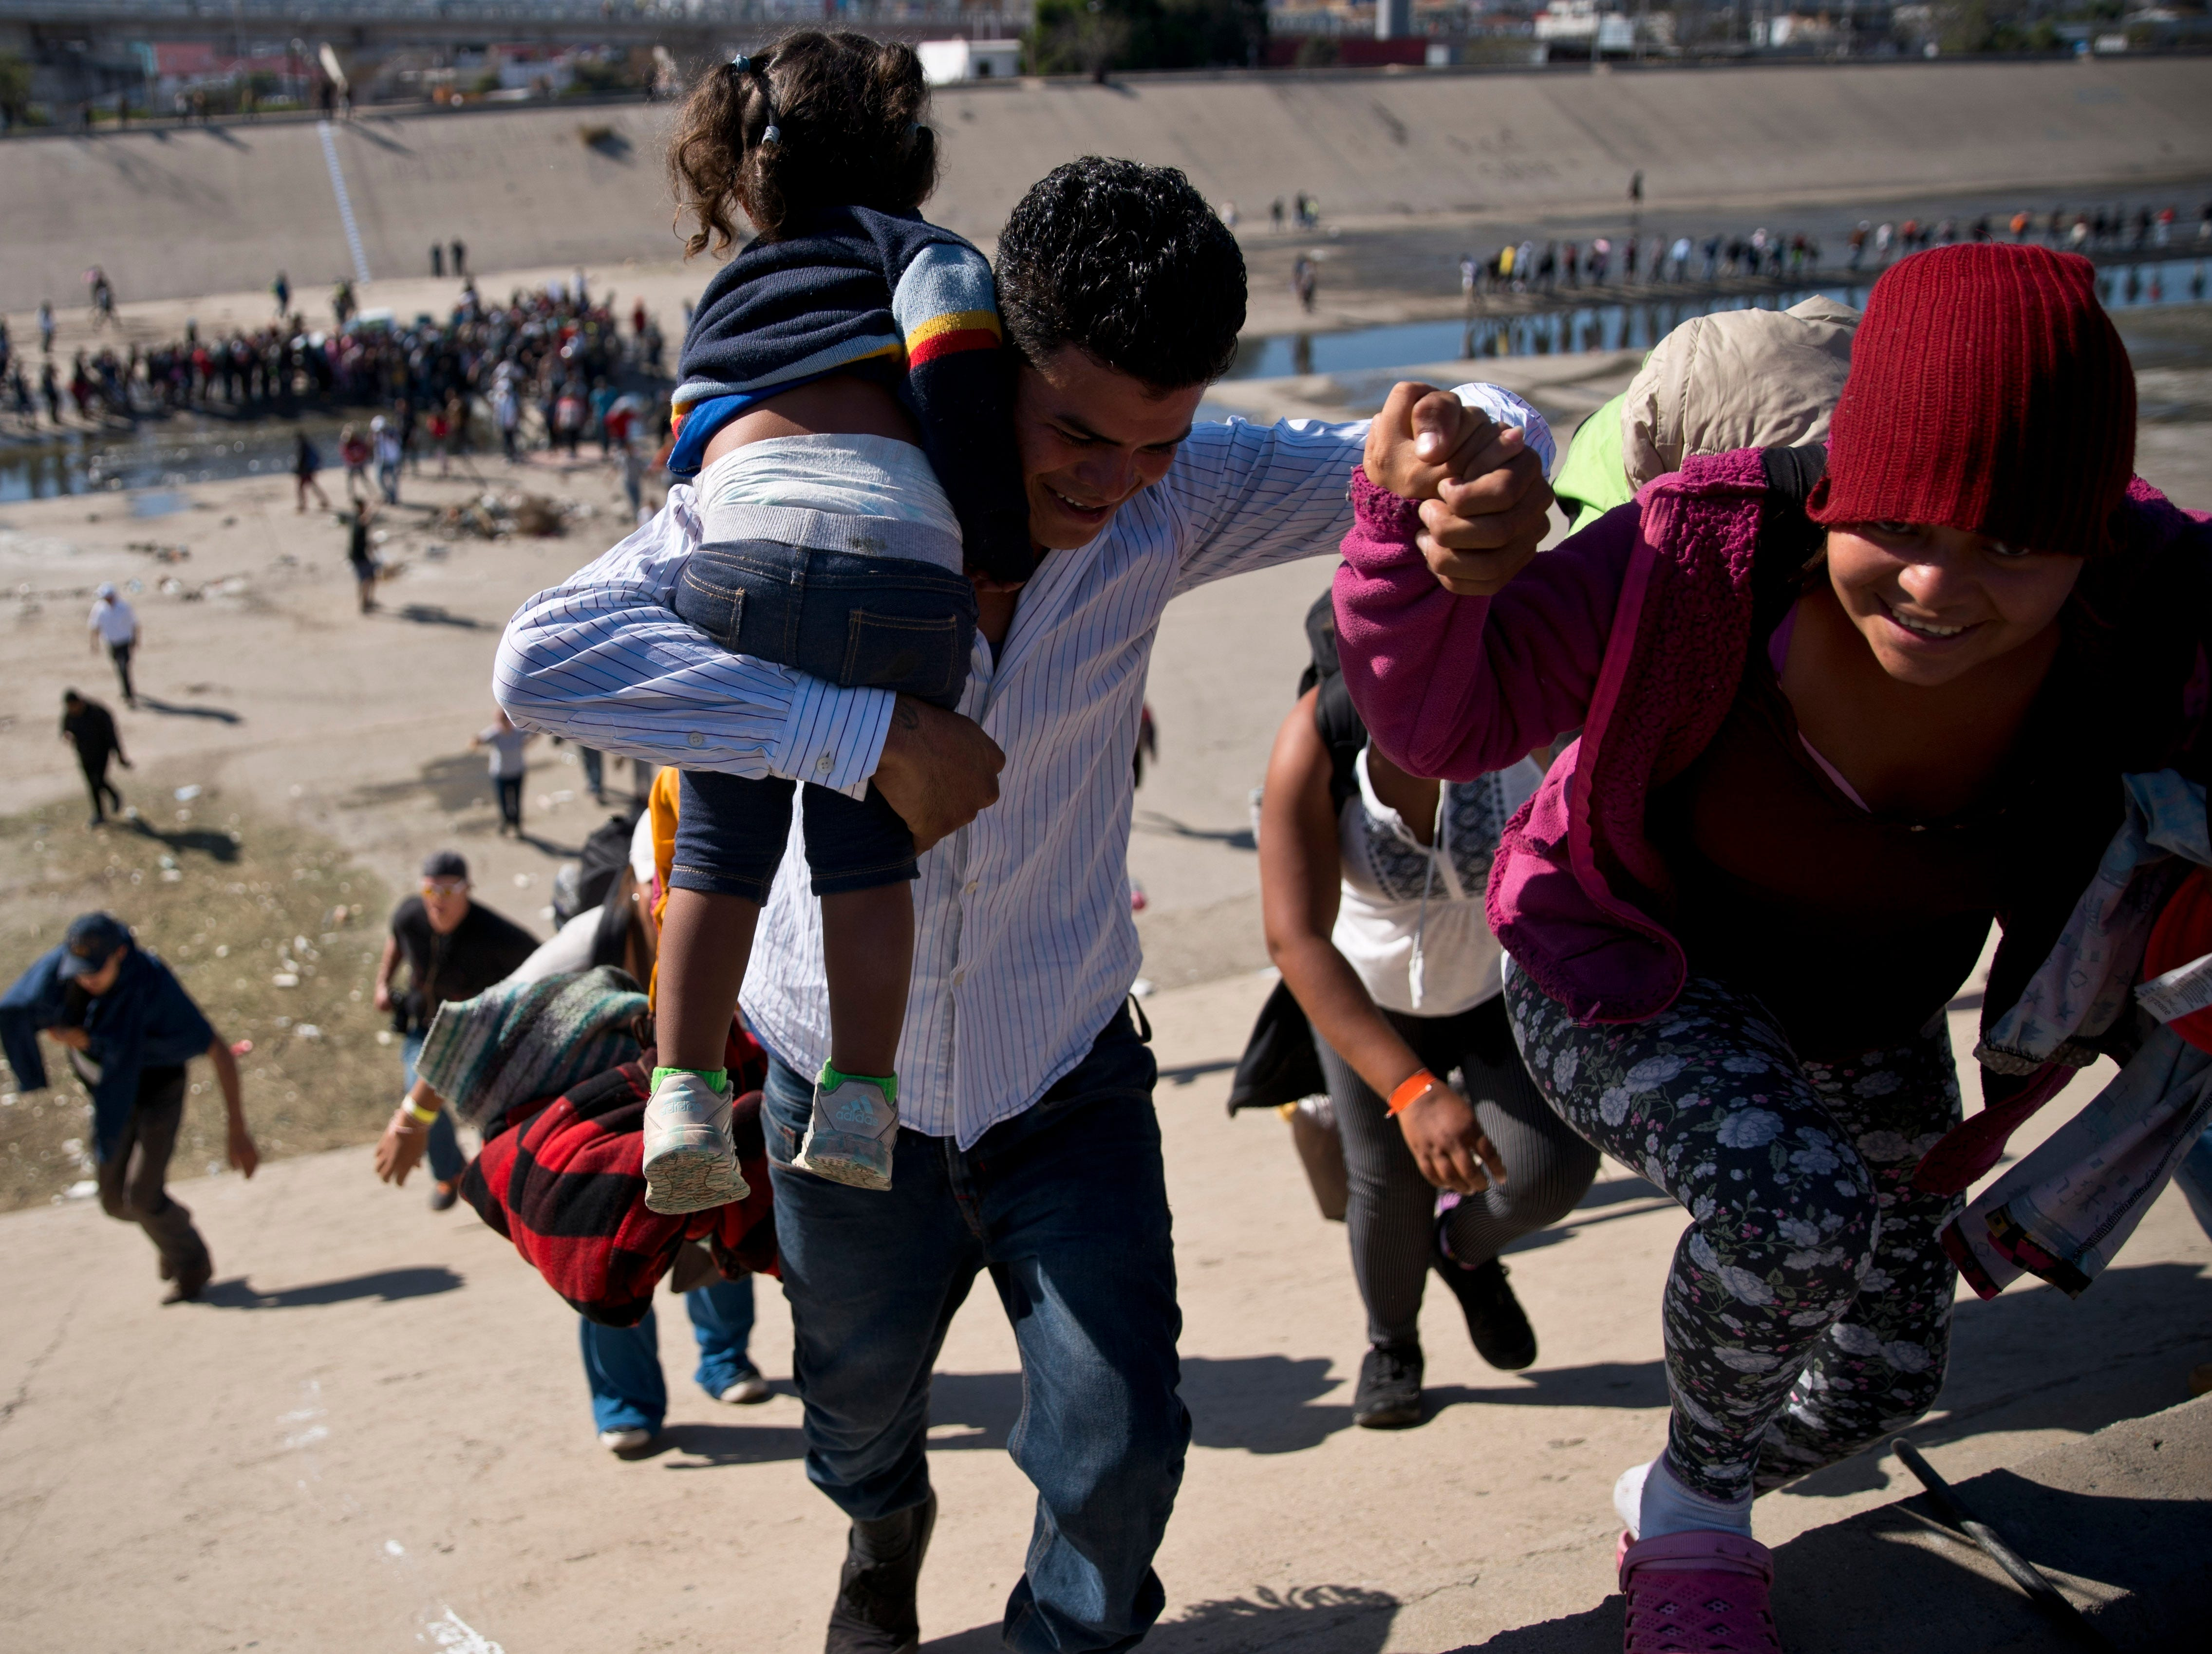 Migrants walk up a riverbank at the Mexico-U.S. border after getting past a line of Mexican police at the Chaparral border crossing in Tijuana, Mexico, Sunday, Nov. 25, 2018, as they try to reach the U.S. The mayor of Tijuana has declared a humanitarian crisis in his border city and says that he has asked the United Nations for aid to deal with the approximately 5,000 Central American migrants who have arrived in the city.